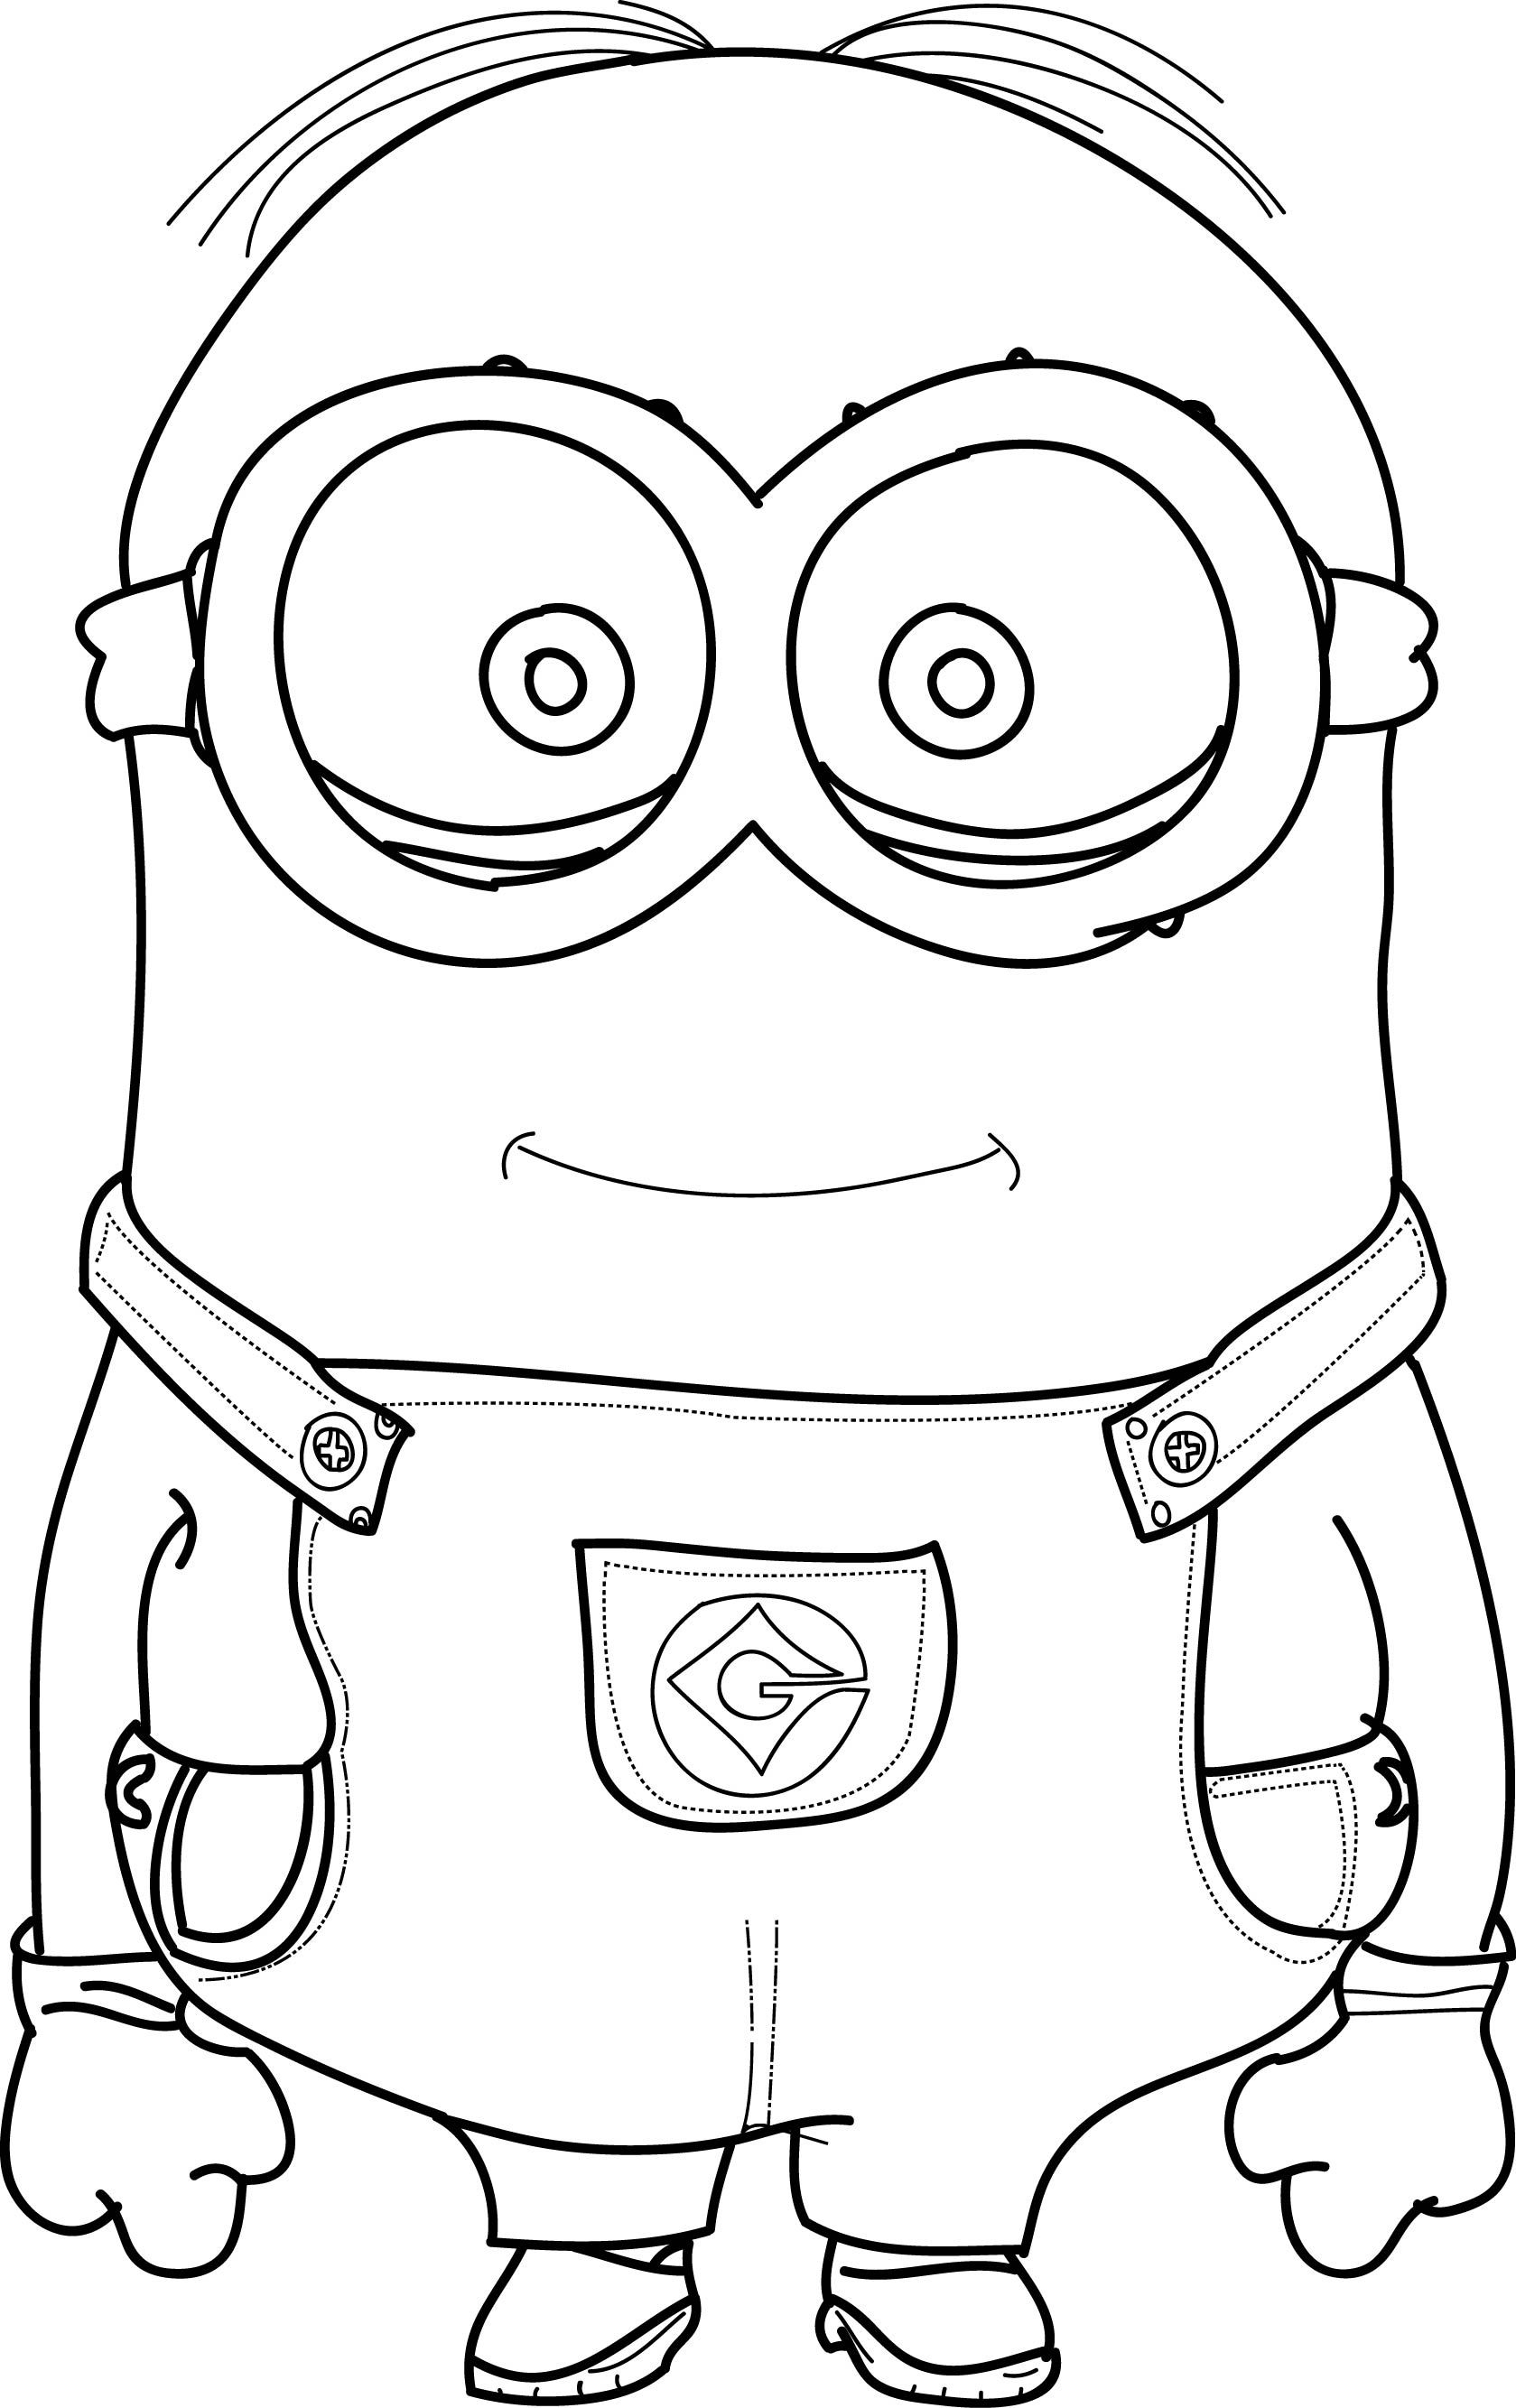 coloring pages minions angen - photo#16